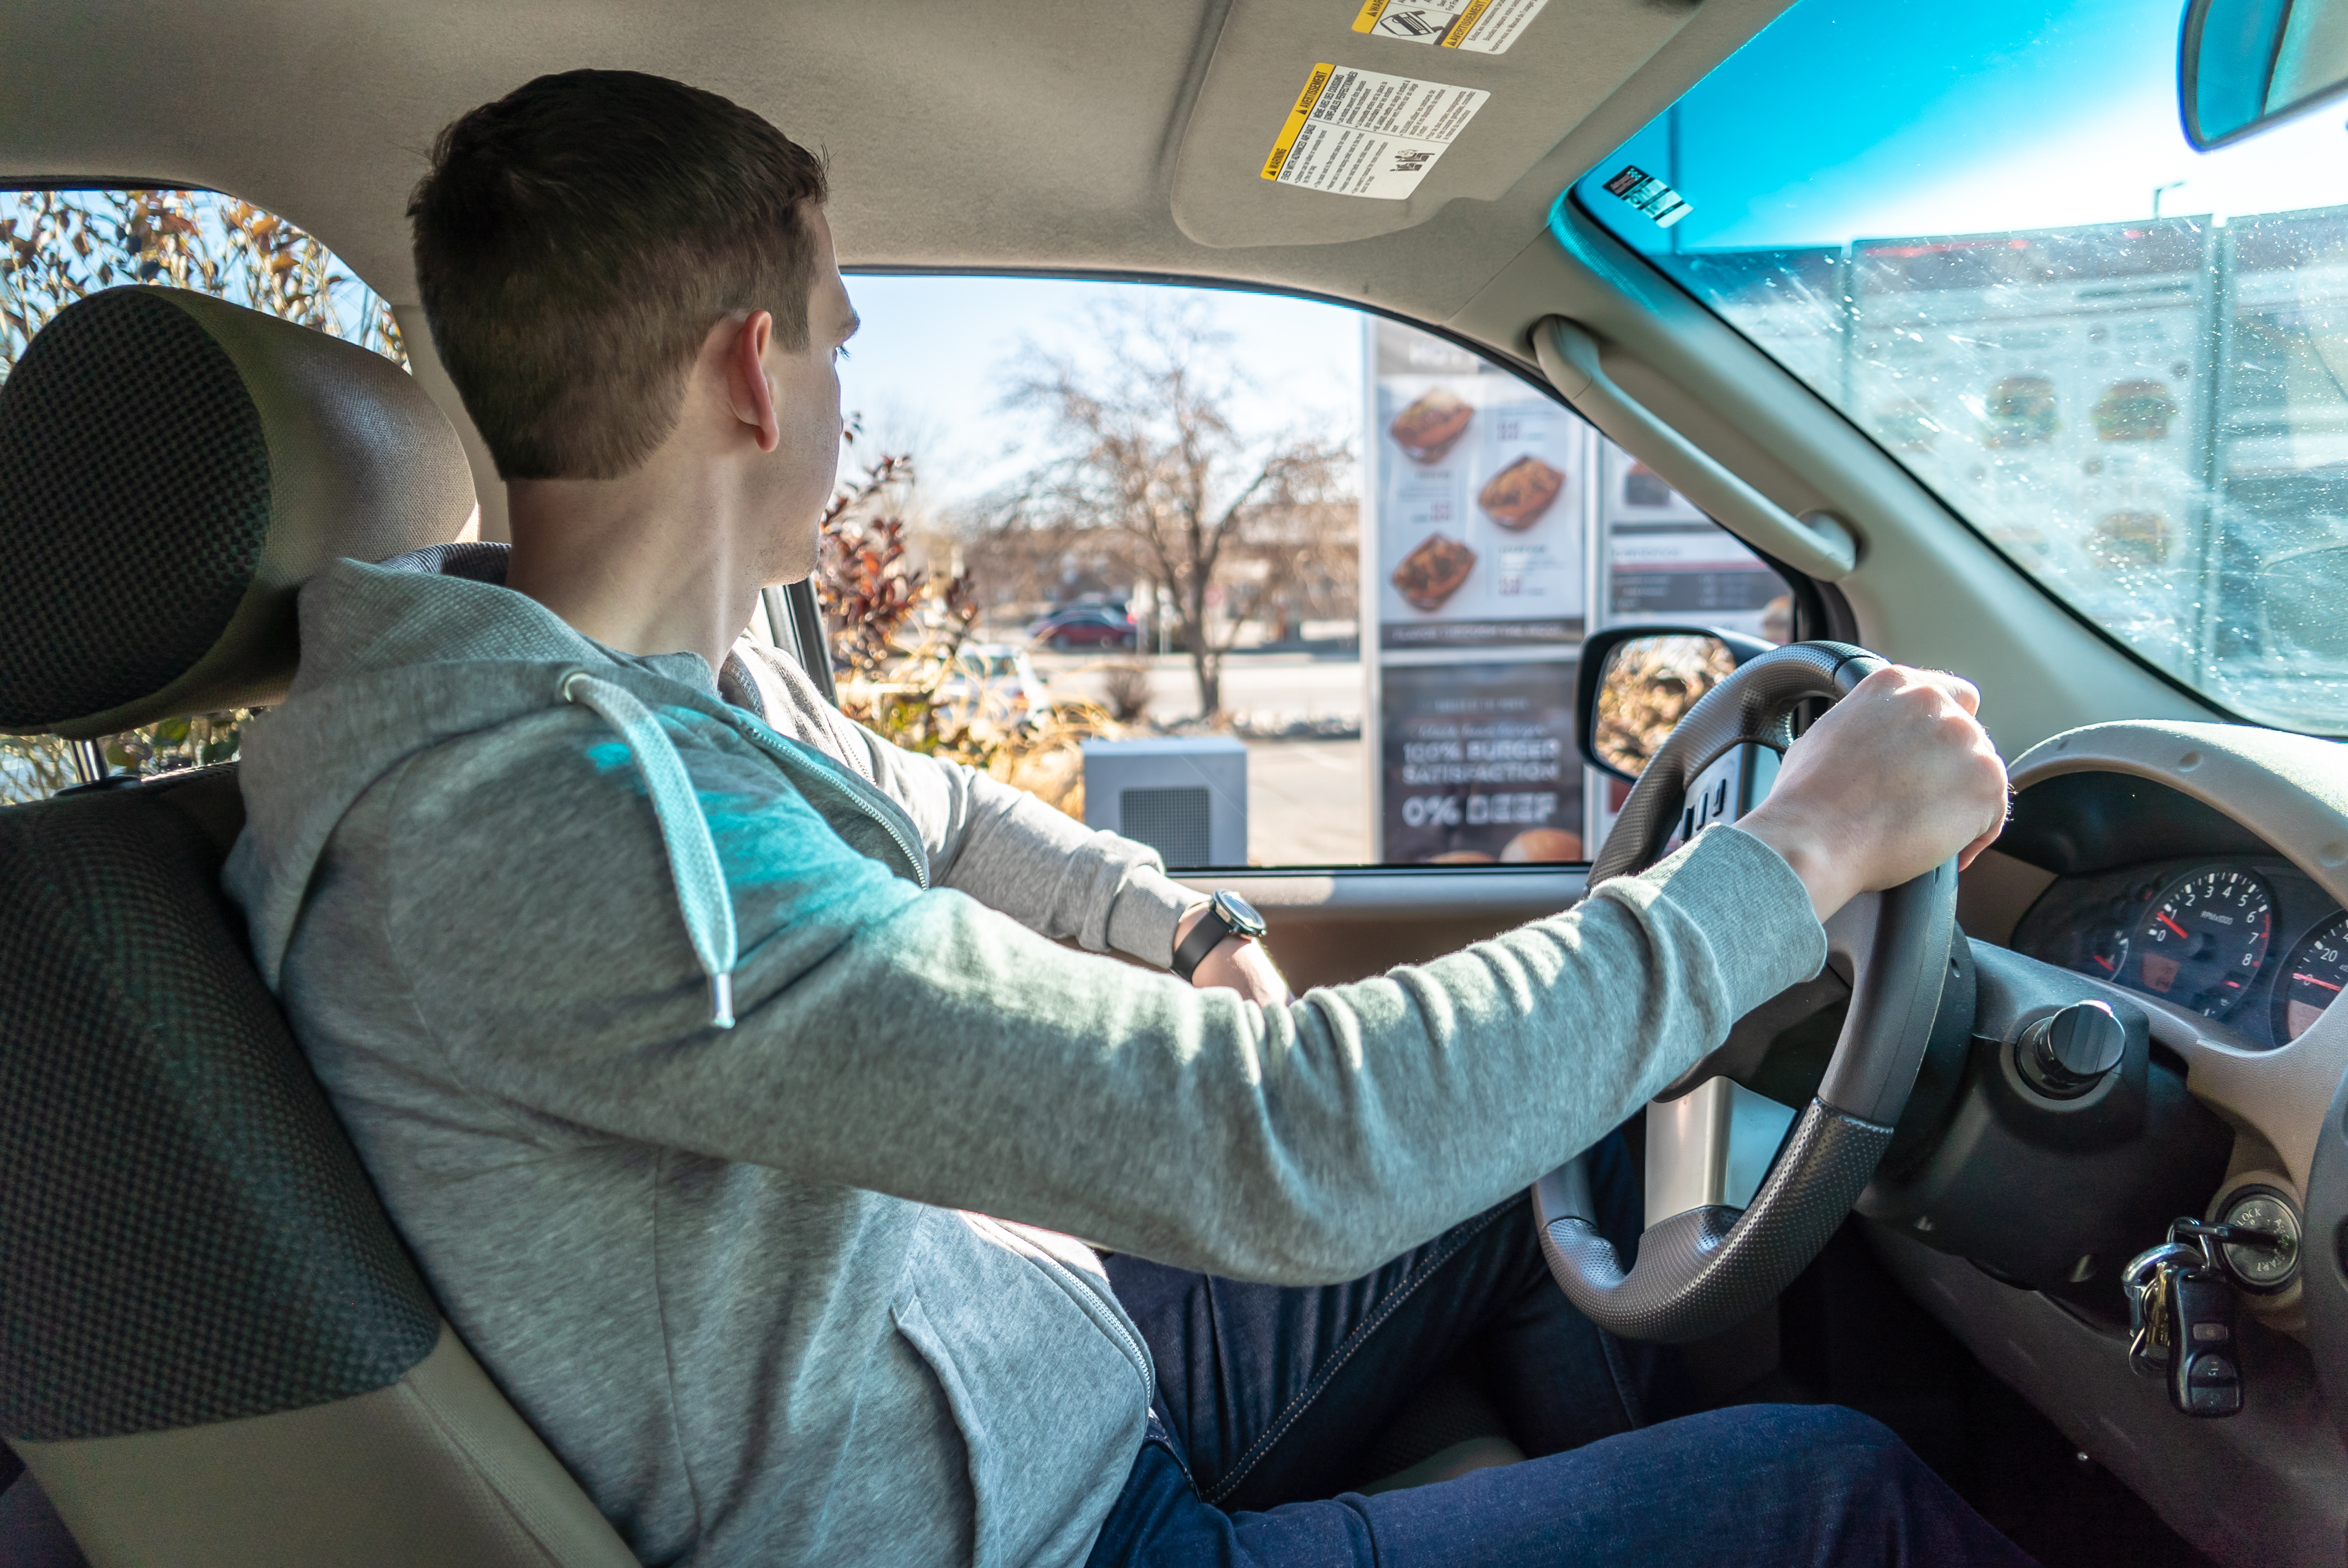 At this fast-food drive-through, the person taking your order might not be a person at all